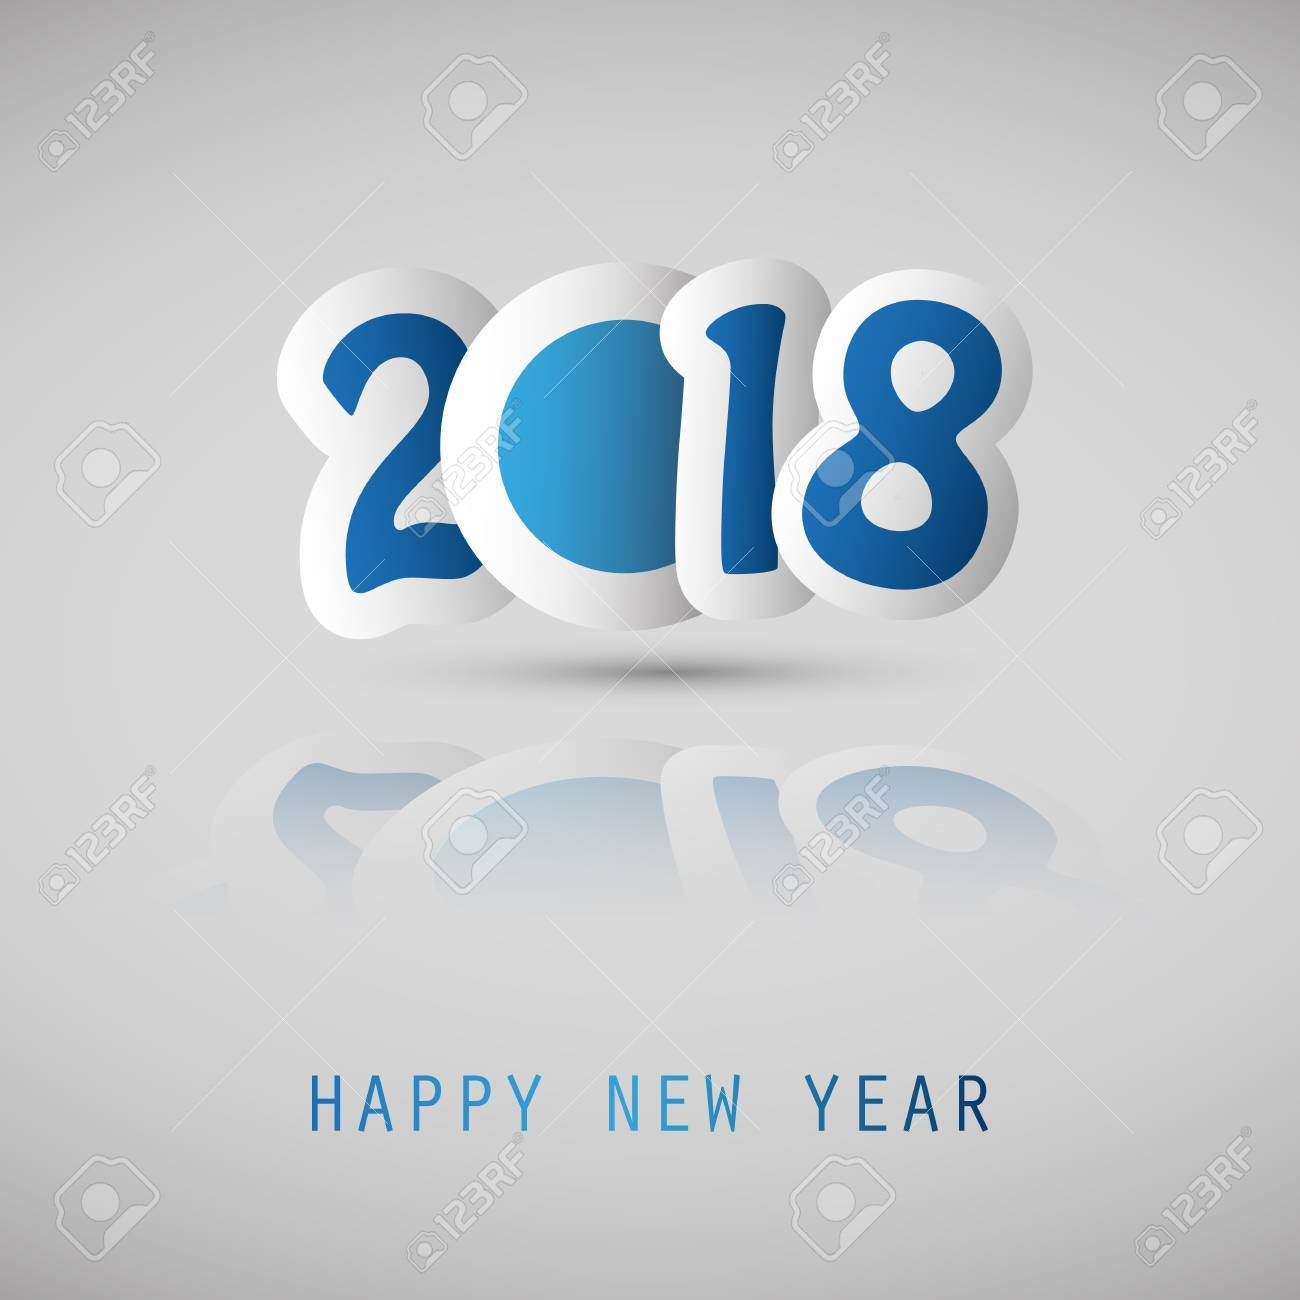 simple blue and white 2018 happy new year card cover on a gray background stock